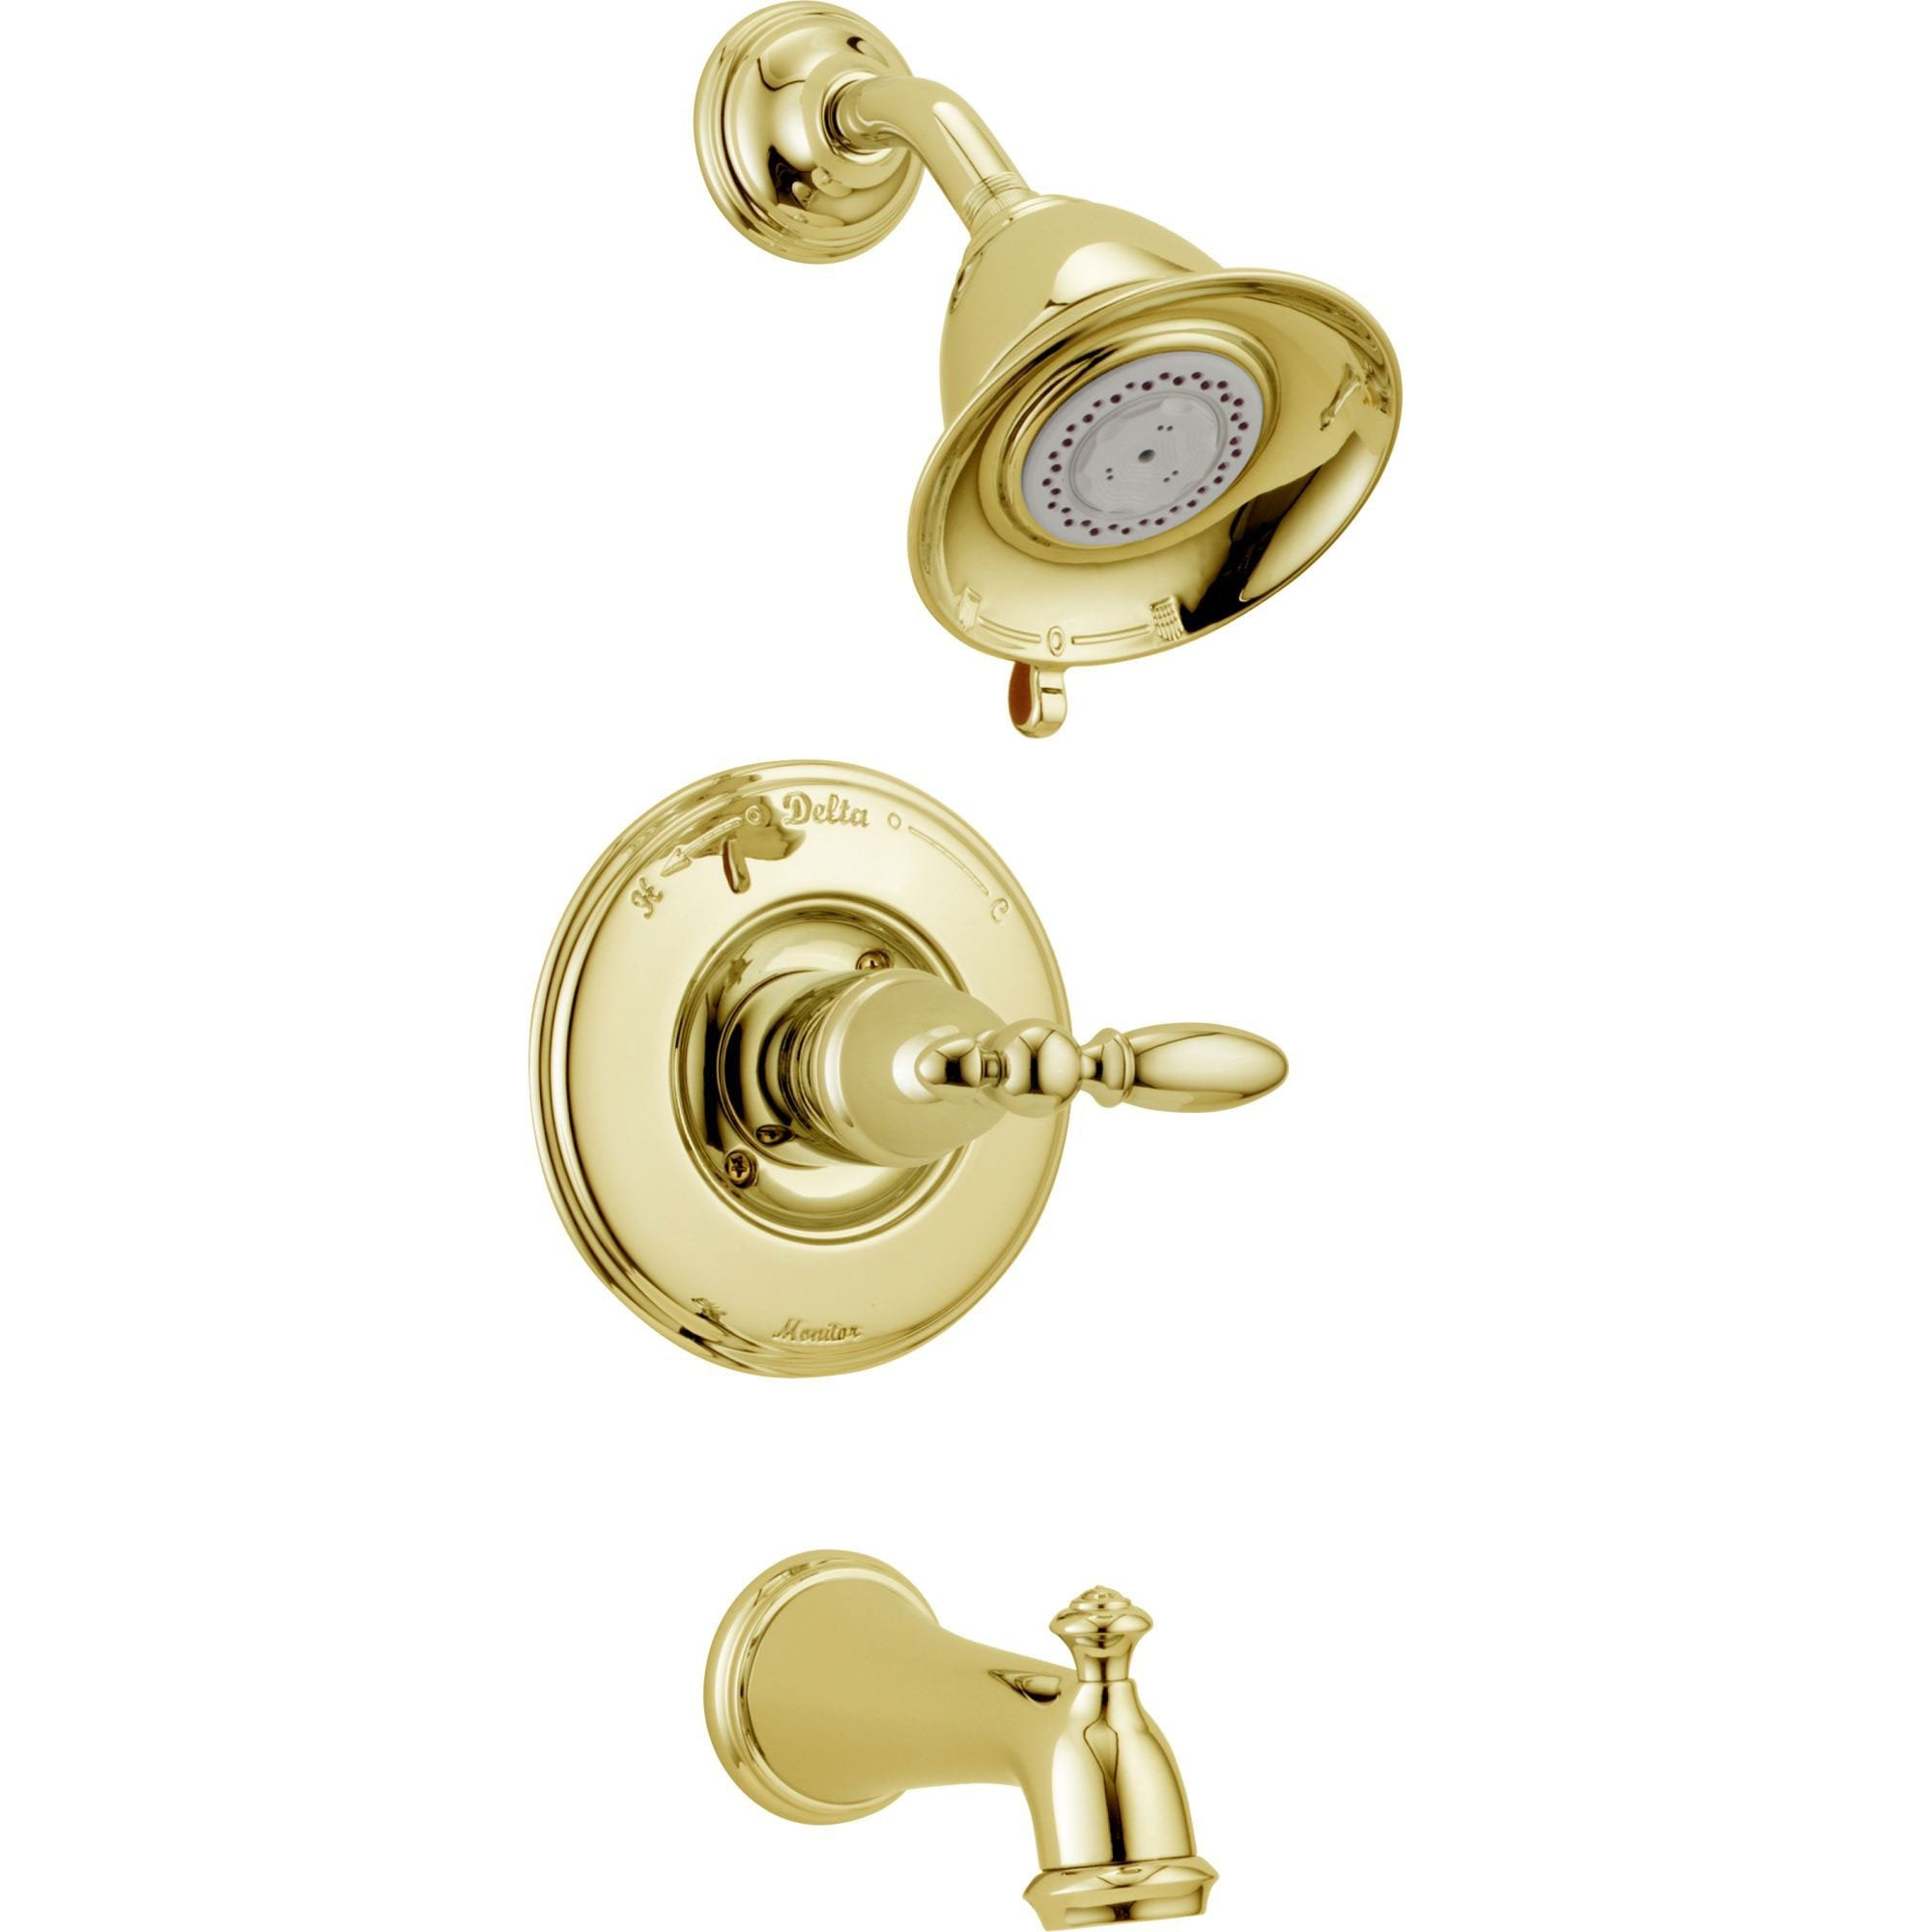 Delta Traditional Victorian Polished Brass Finish 14 Series Tub and Shower Faucet Combo INCLUDES Rough-in Valve with Stops and Single Lever Handle D1187V